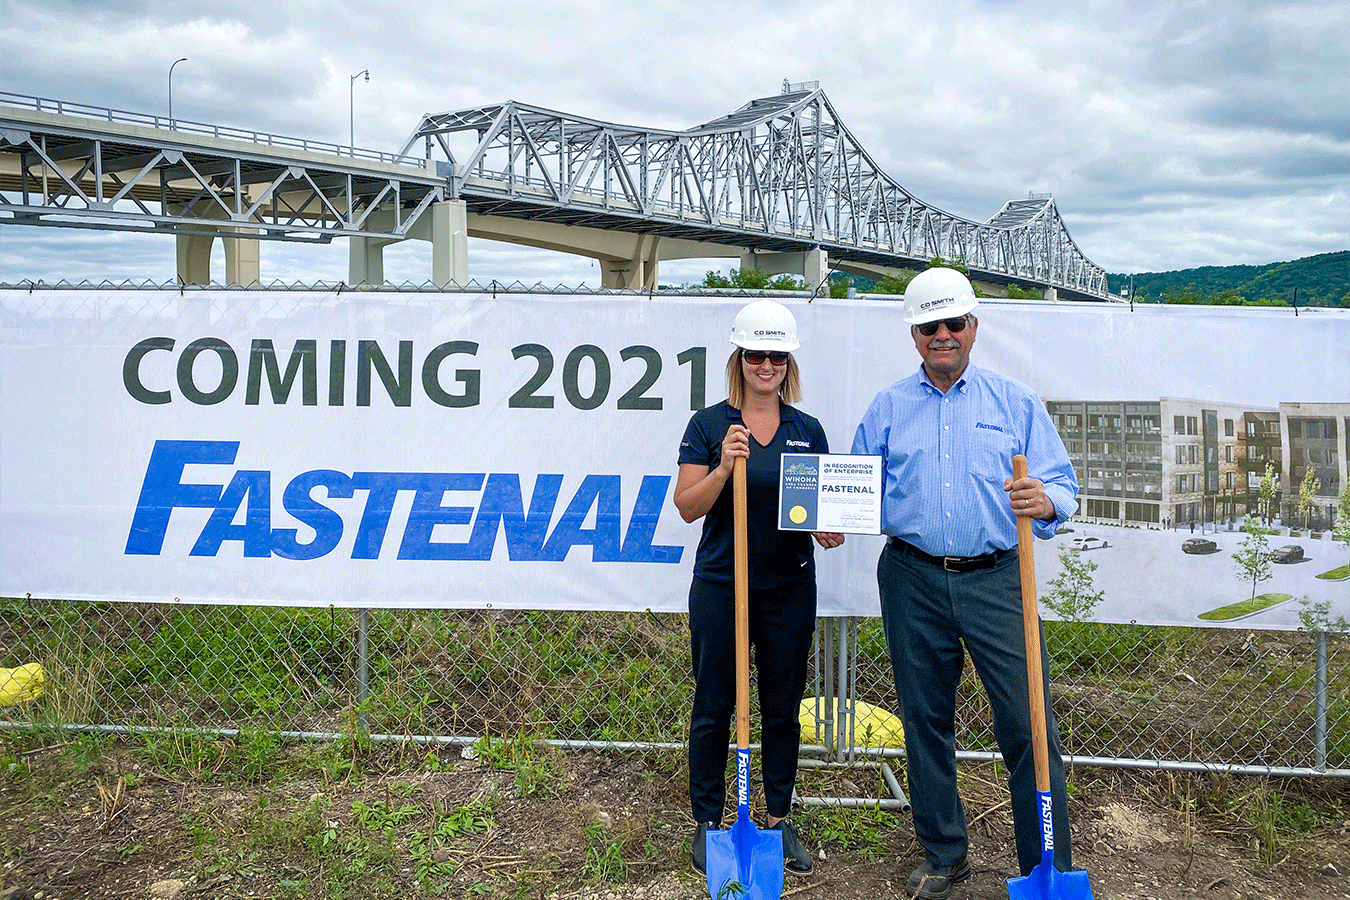 02-Fastenal-Groundbreaking-Ceremony-7-22-2020